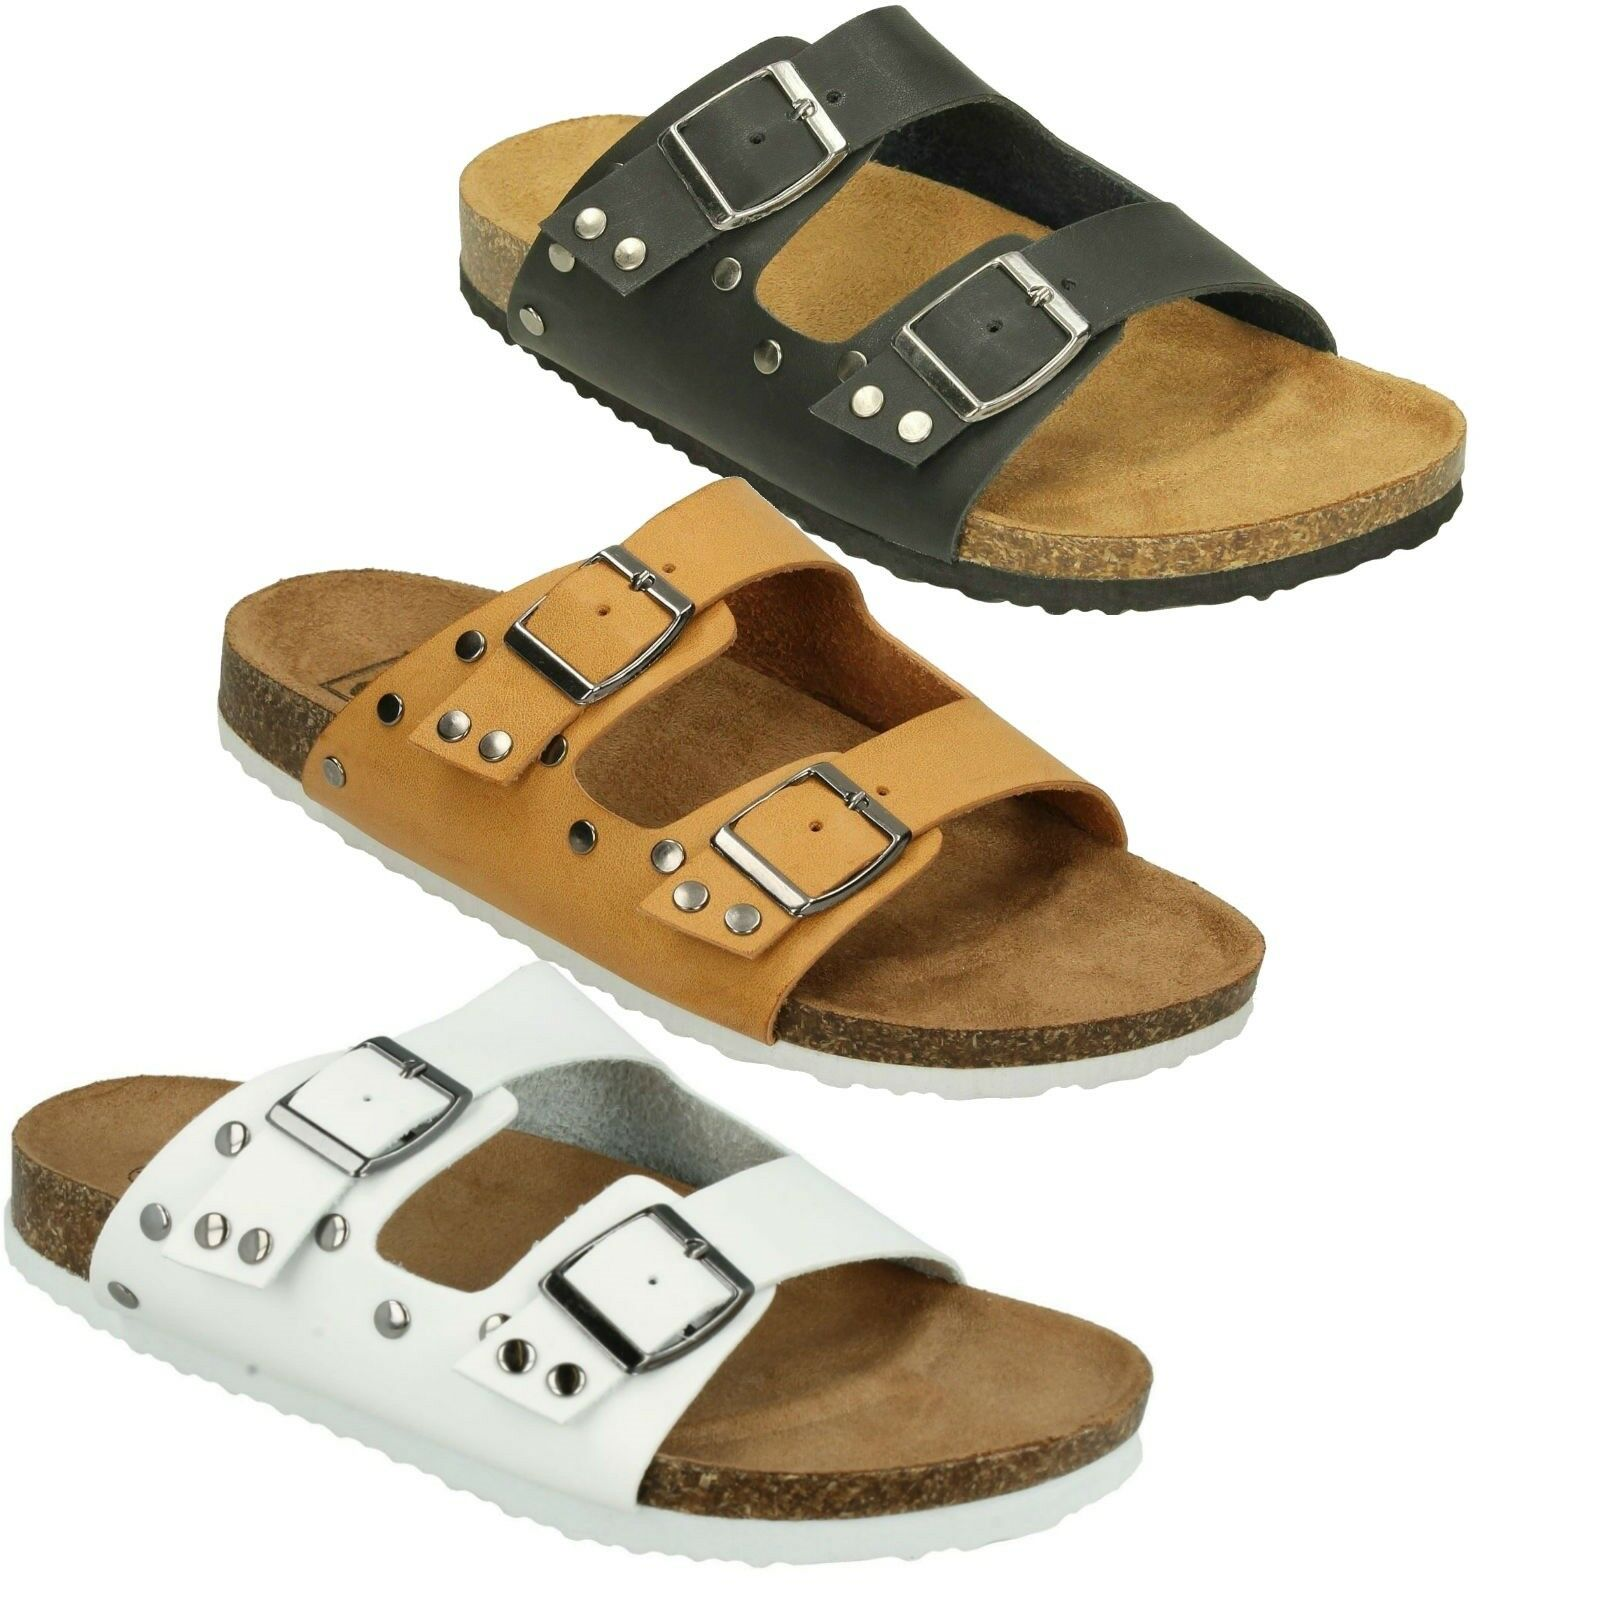 F0R0049 DOWN TO EARTH STRAP LADIES OPEN TOE BUCKLE STRAP EARTH SUMMER BEACH SANDALS SIZES 3f4495